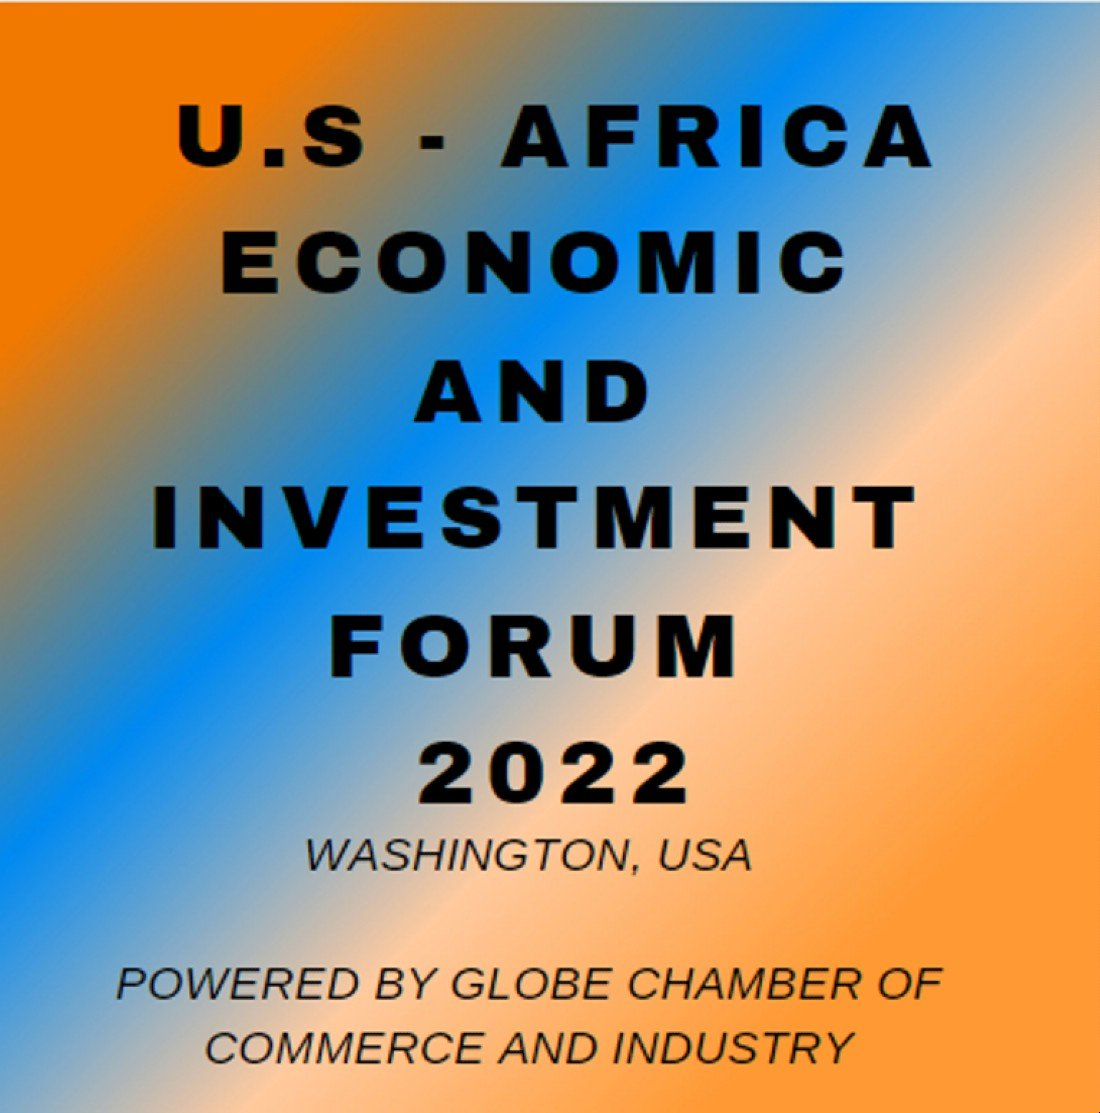 US AFRICA ECONOMIC AND INVESTMENT FORUM 2022, 1 March | Event in Washington | AllEvents.in